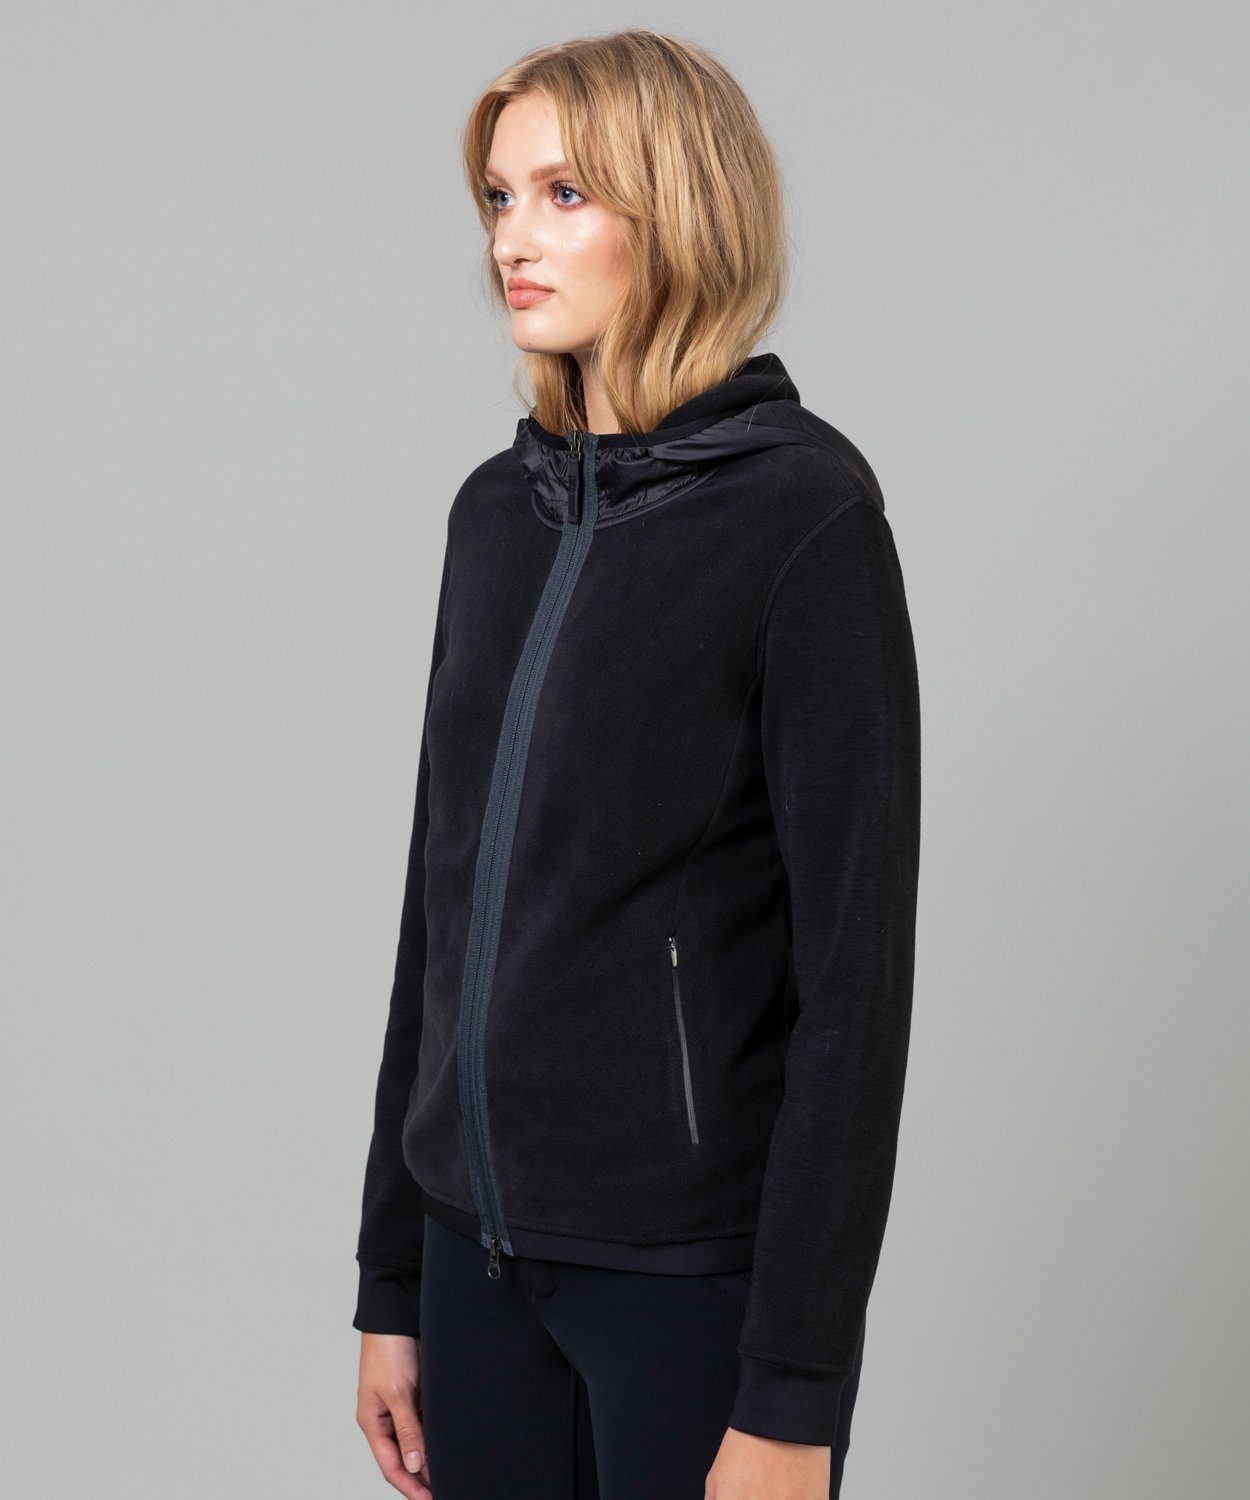 Women's Isla Multi Fleece Jacket Mid Layer Frauenschuh